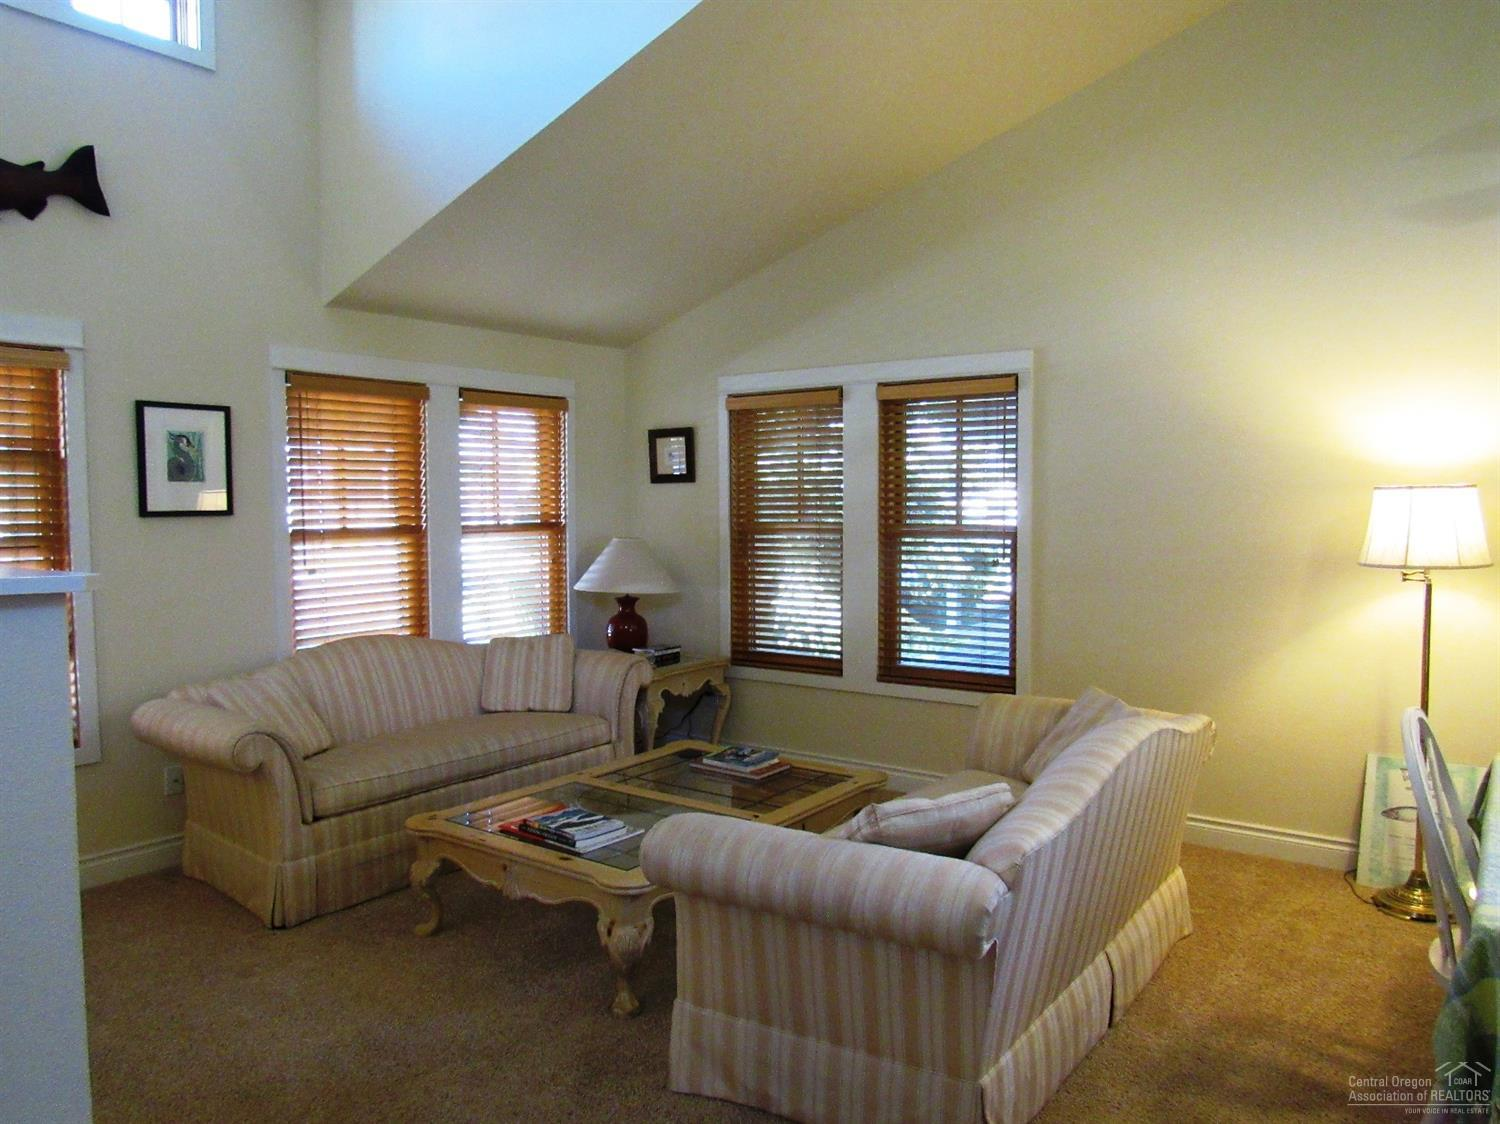 Vaulted ceilings and lots of light/bright windows